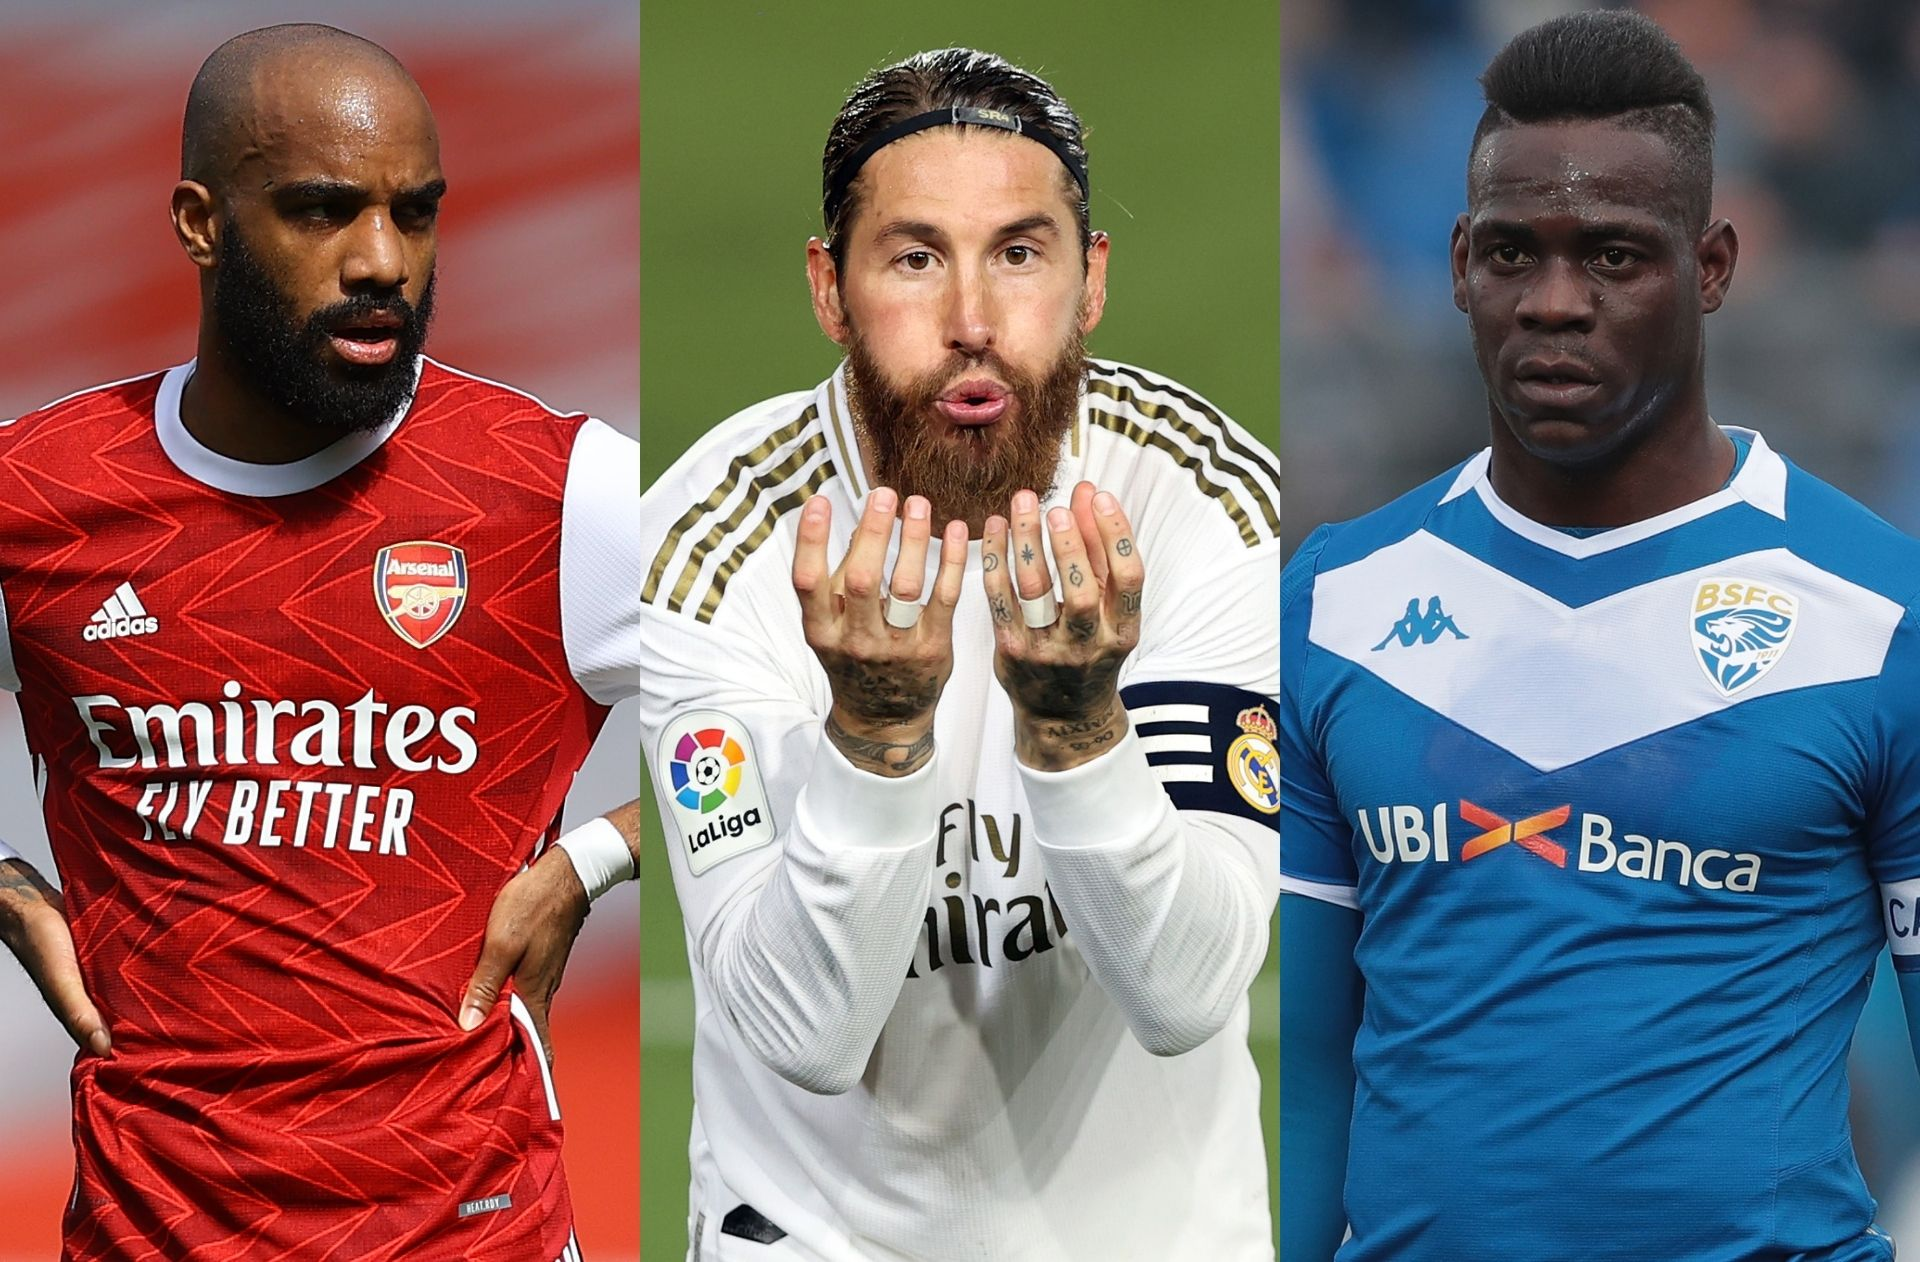 Tuesday's transfer rumors - PSG close in on 3 superstar signings